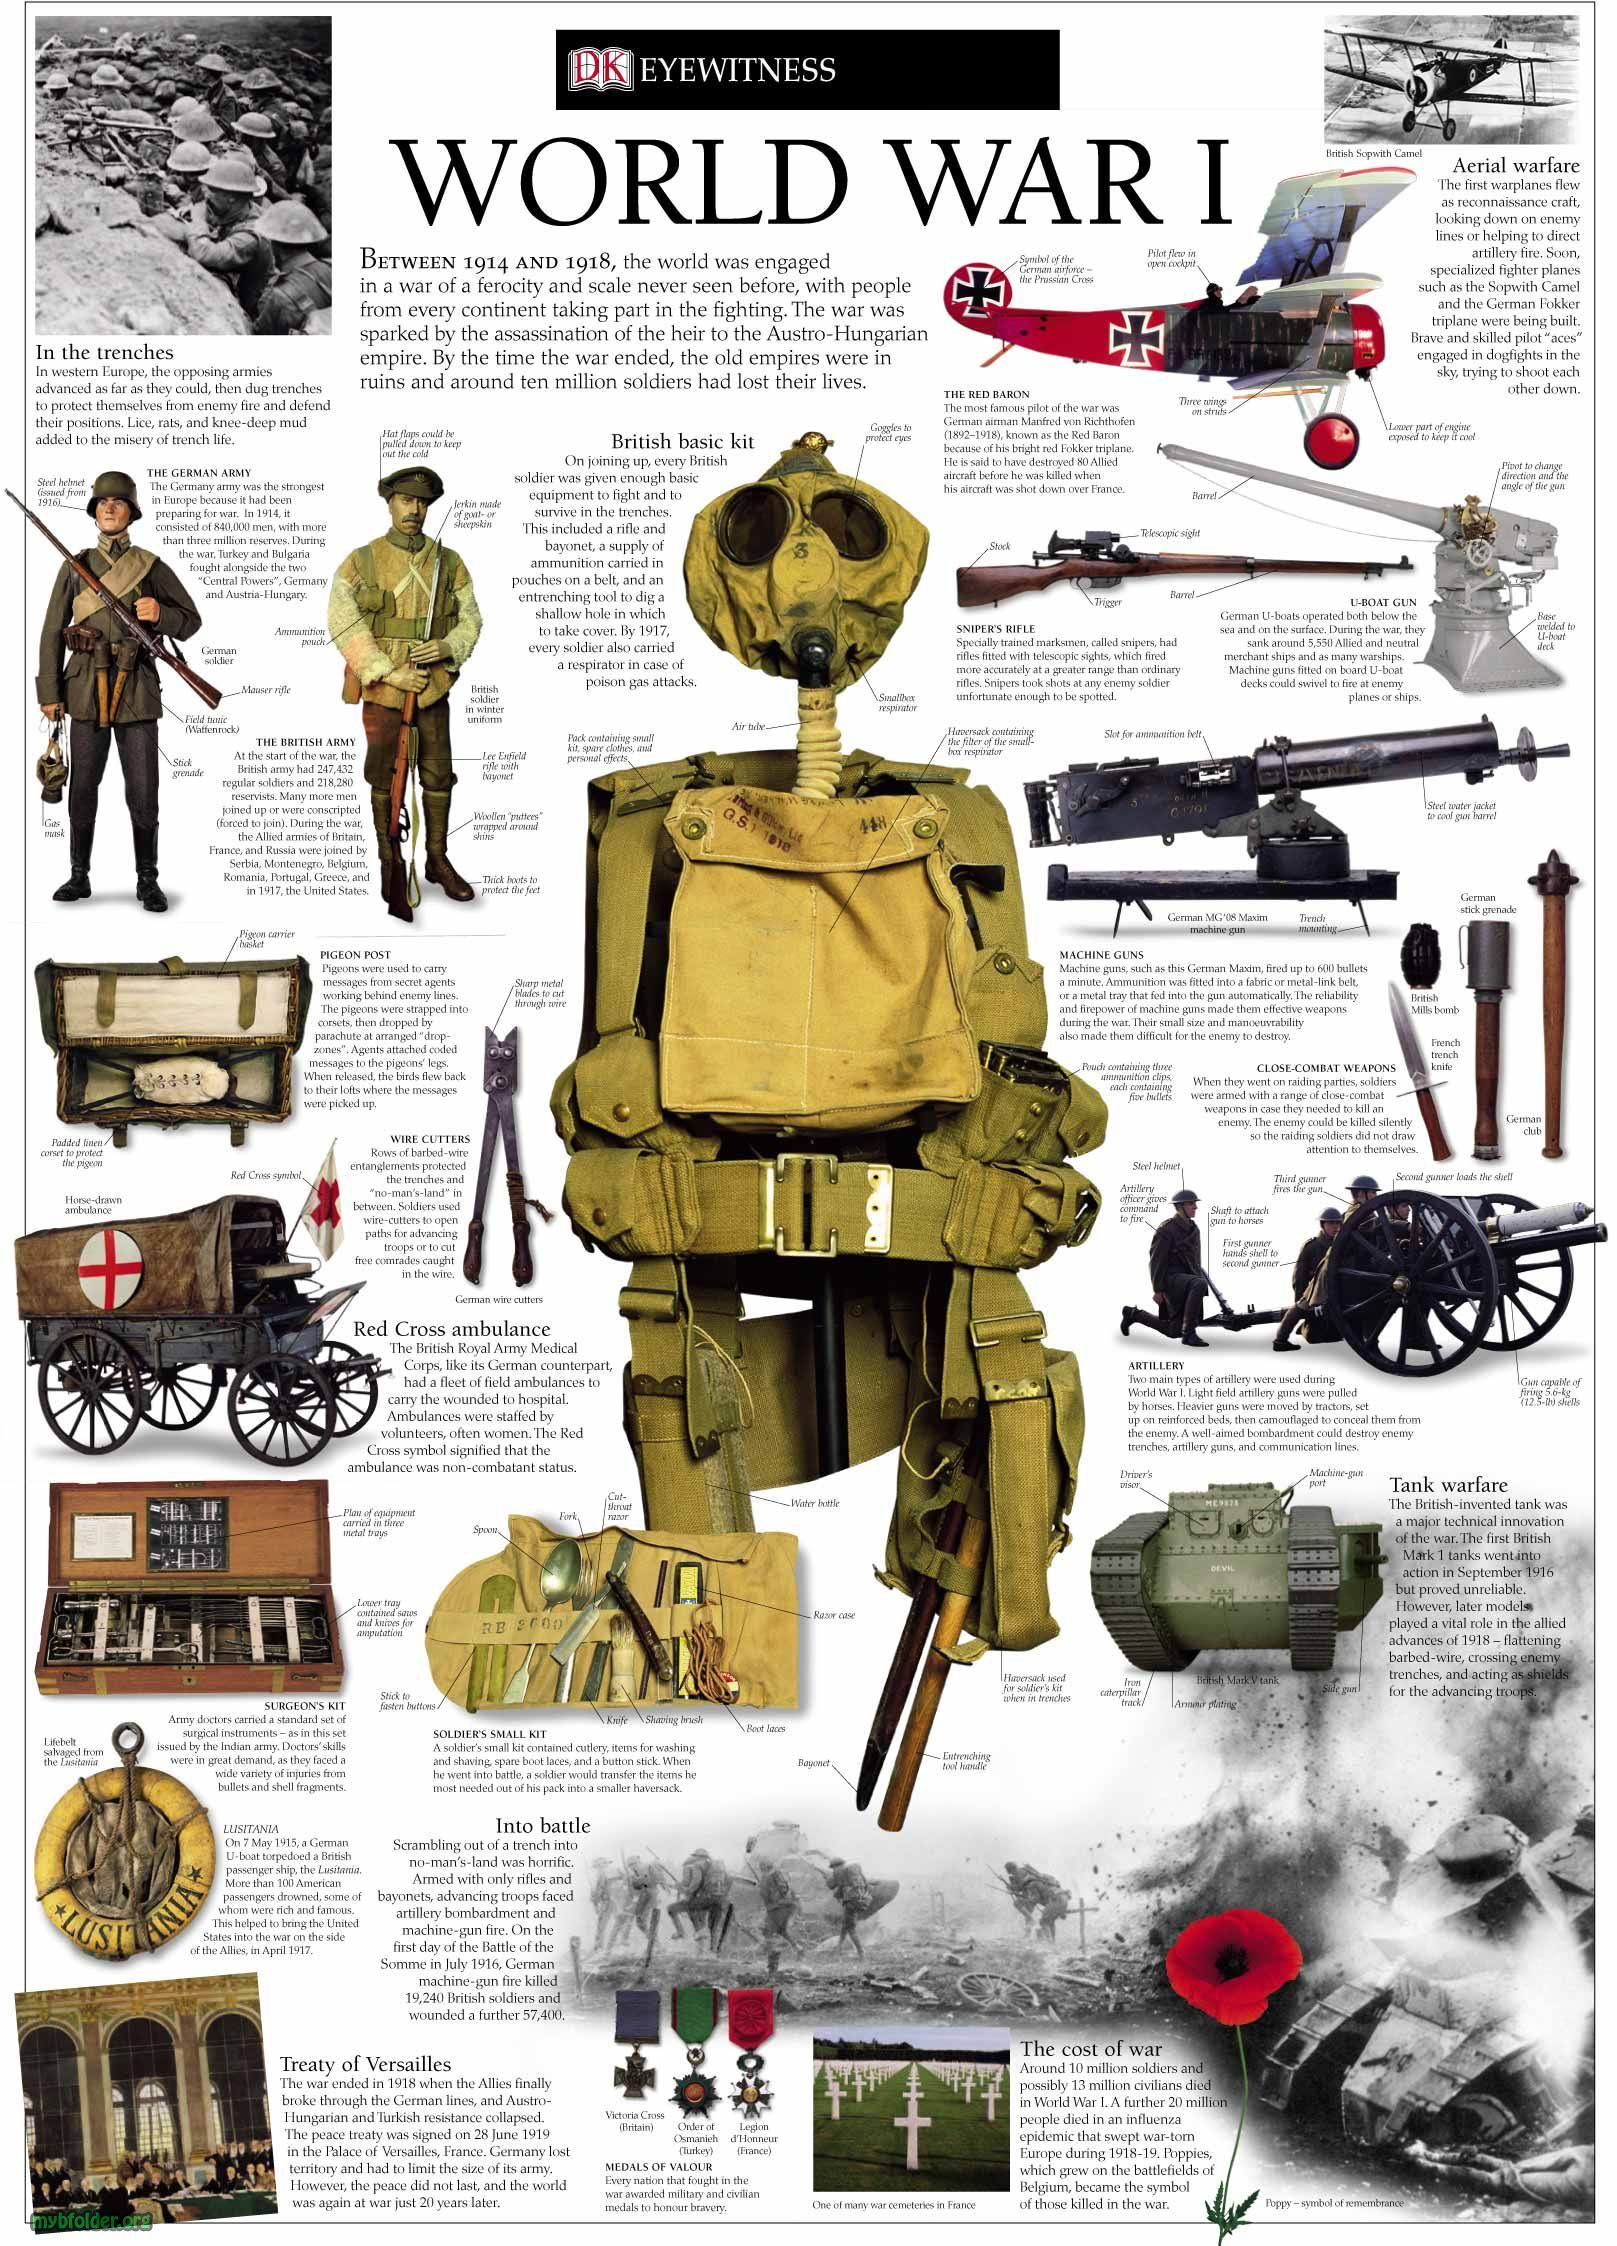 World War One Recipe Page For The Destruction Of Millions